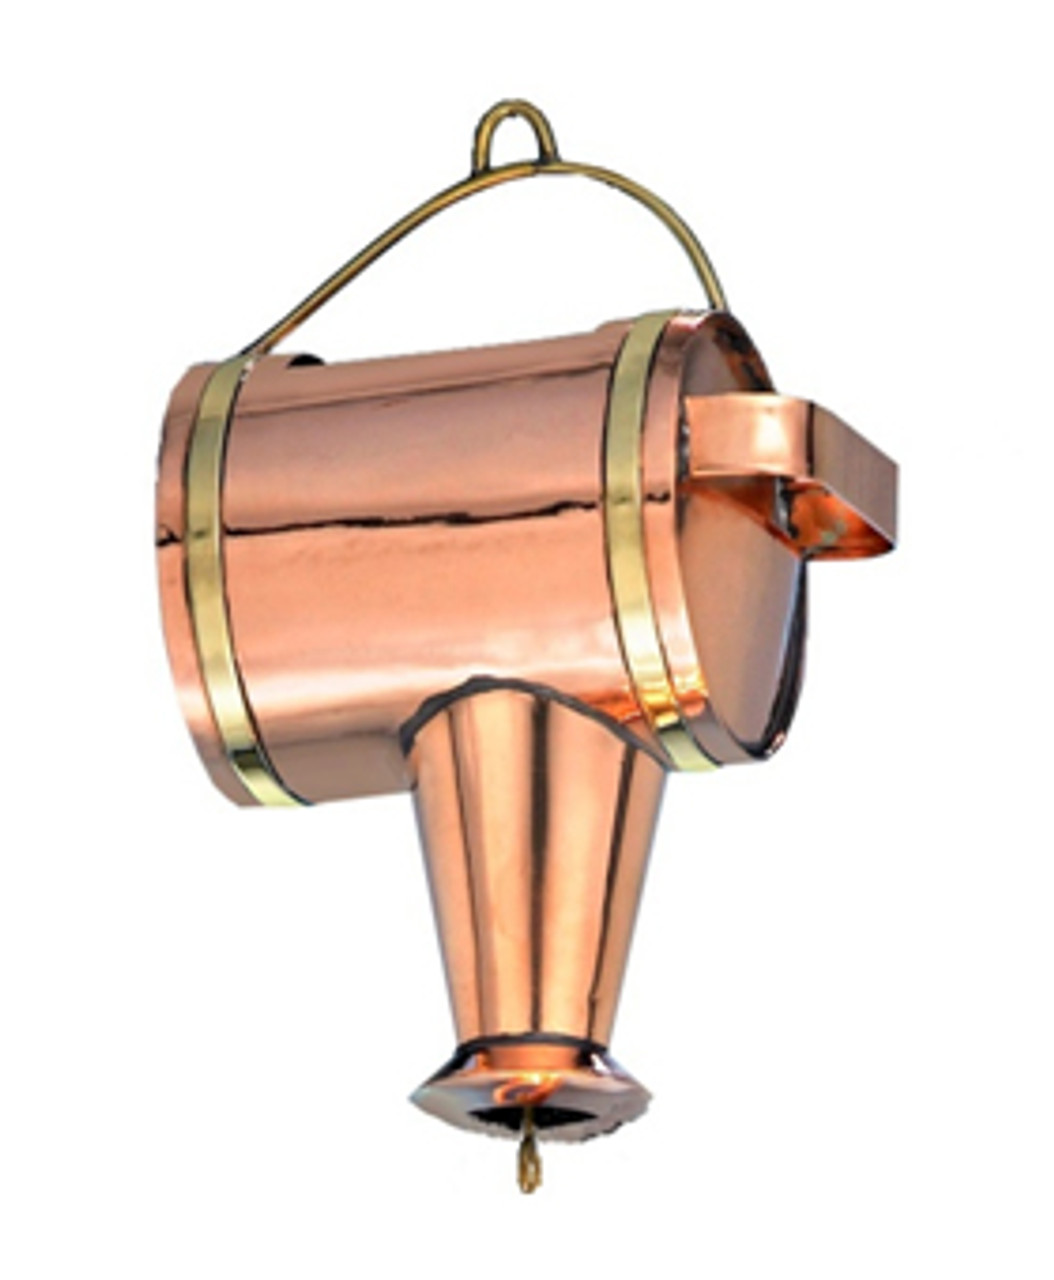 11 Quot Handcrafted Polished Copper Watering Can Rain Chain